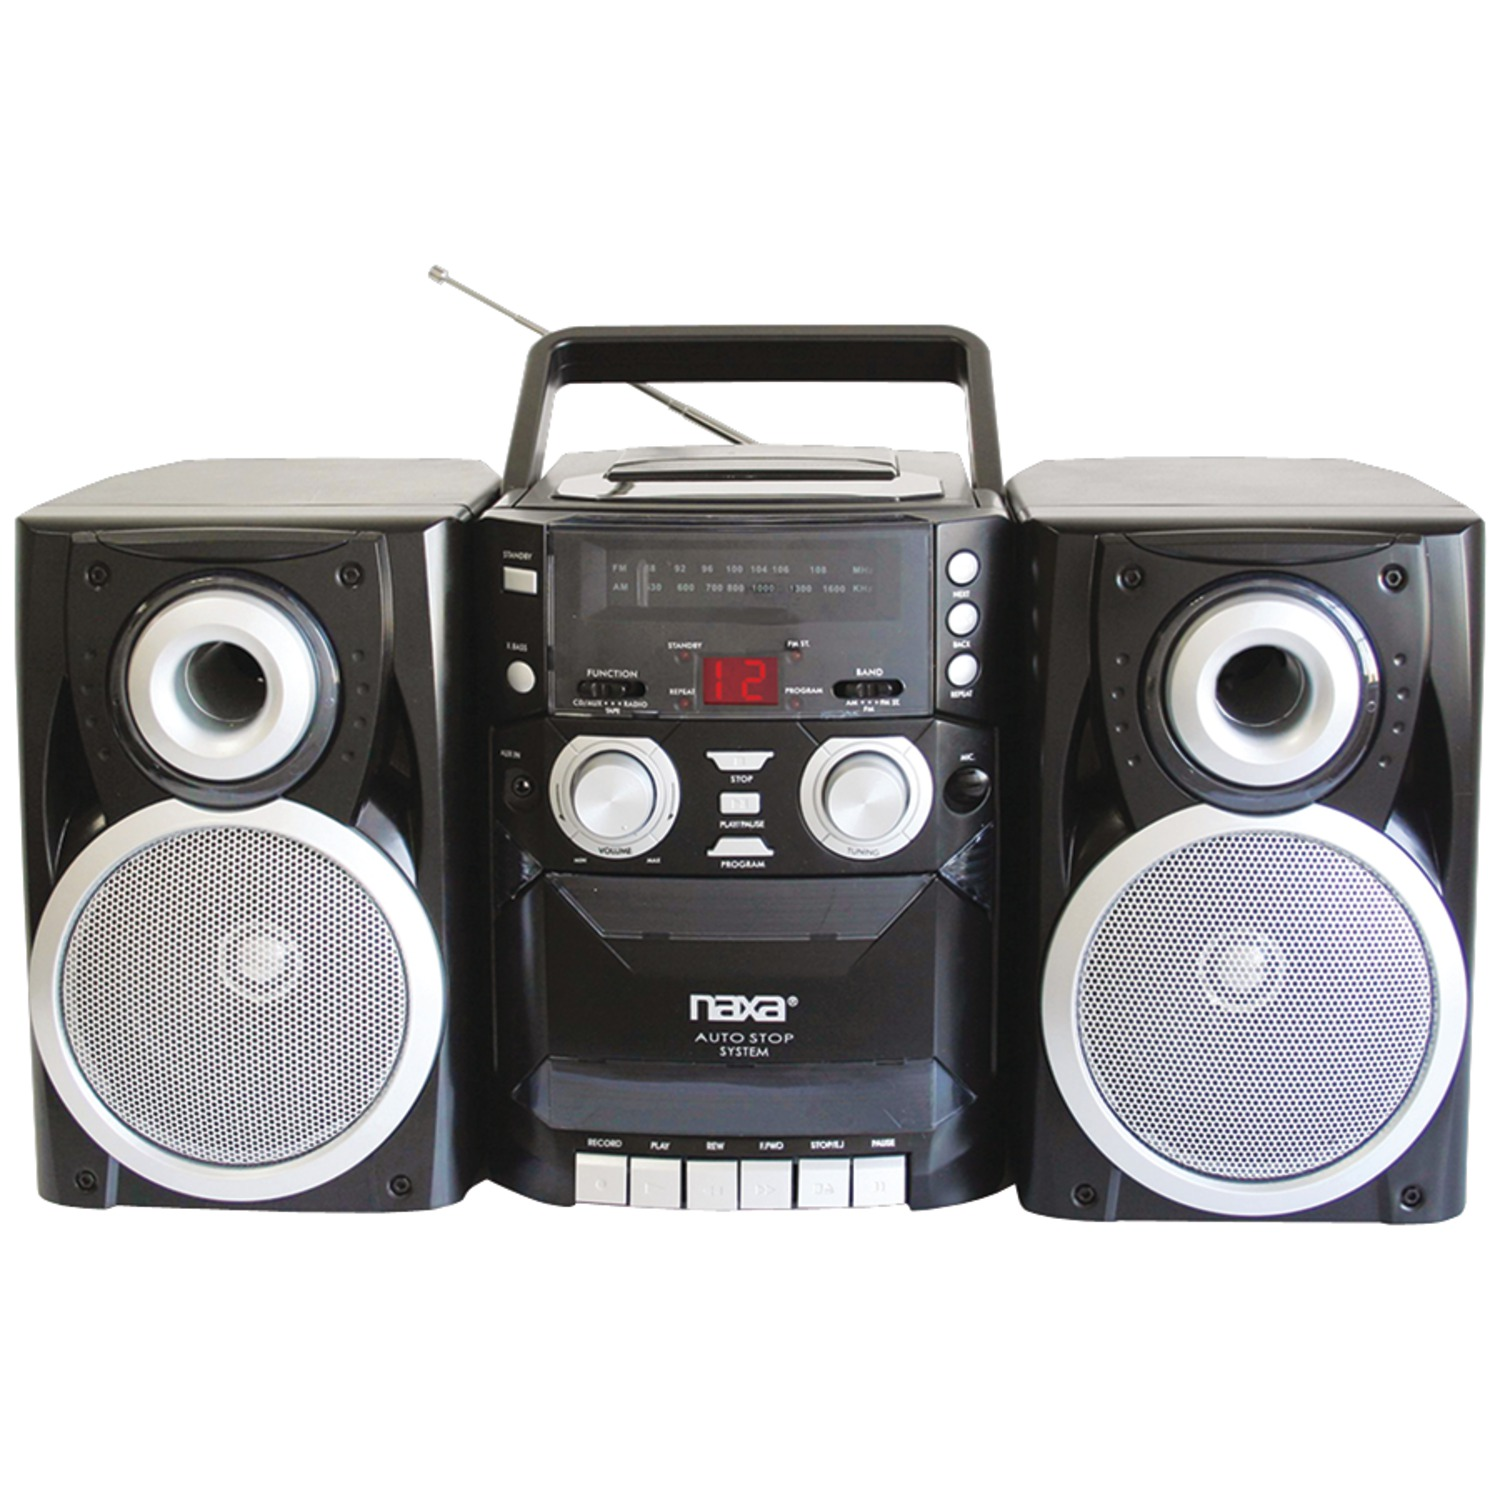 Naxa NPB426 Portable CD Player with AM FM Radio, Cassette & Detachable Speakers by Naxa